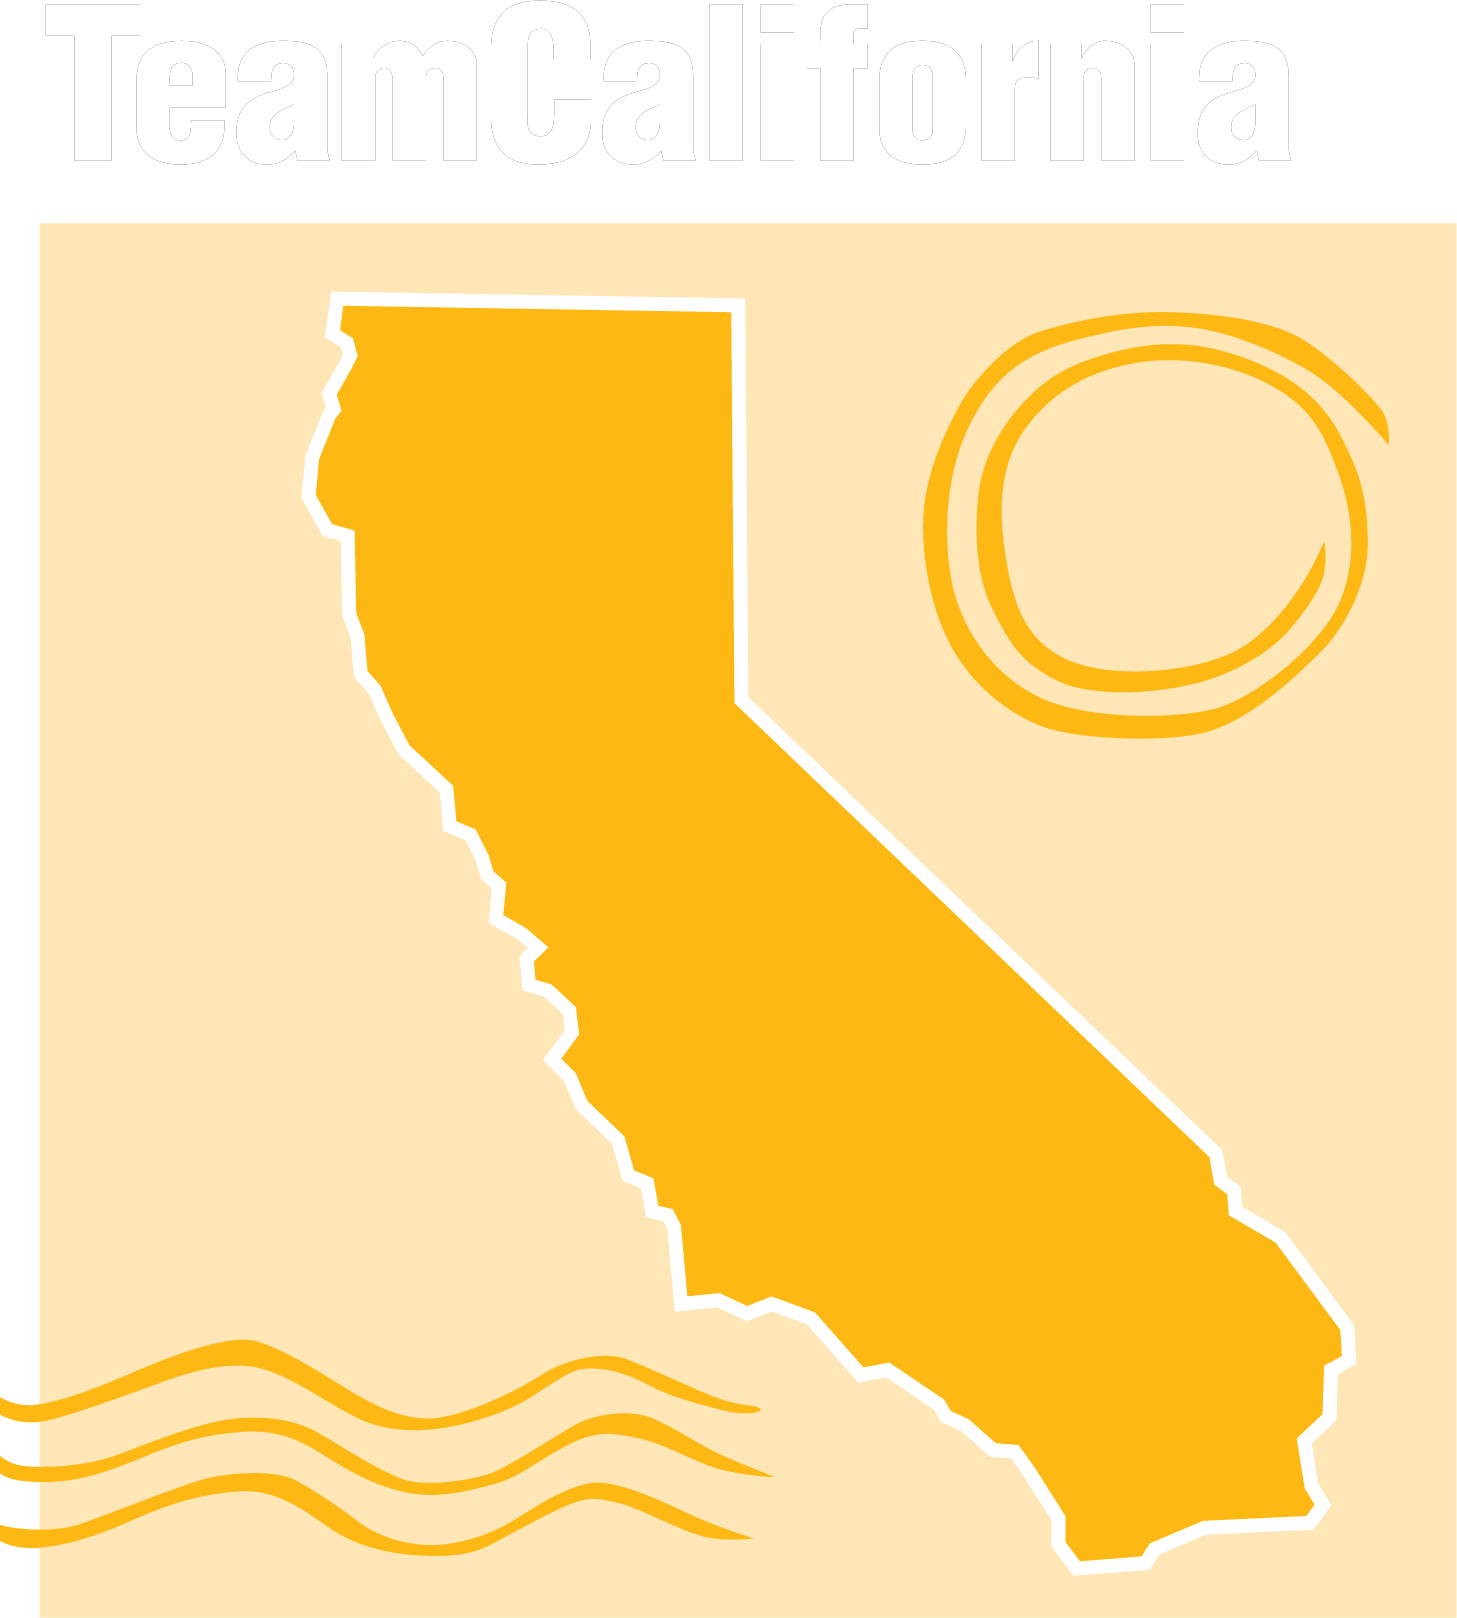 Industry California Map.Industry Map Of California Teamcalifornia